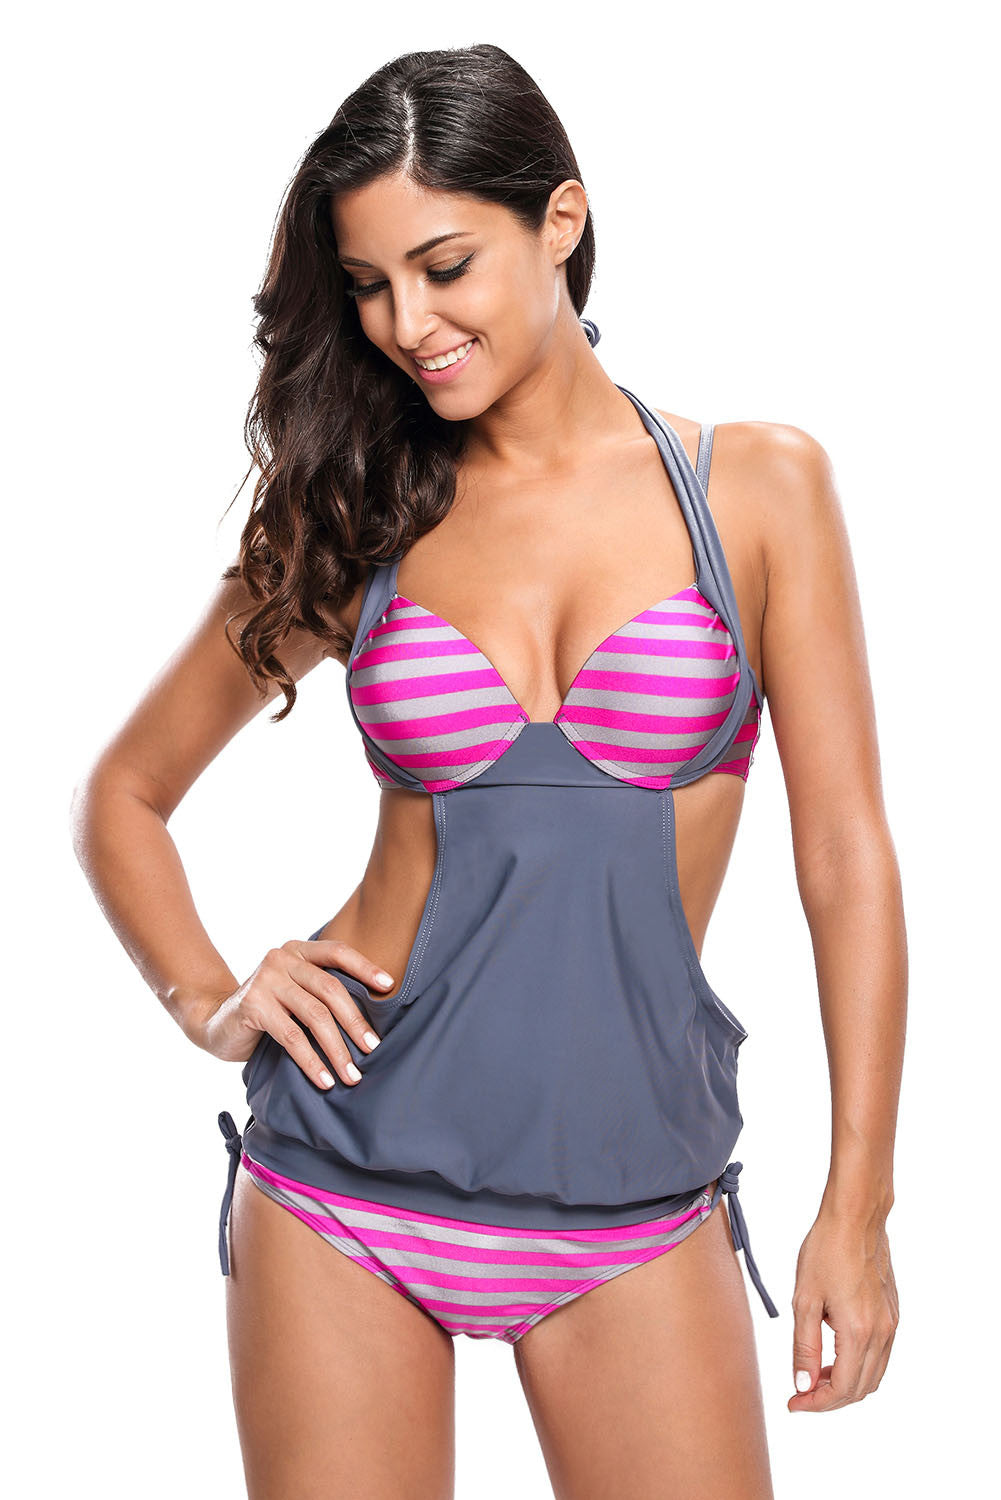 Chicloth 2pcs Solid Grey Splice Striped Halter Tankini Swimsuit